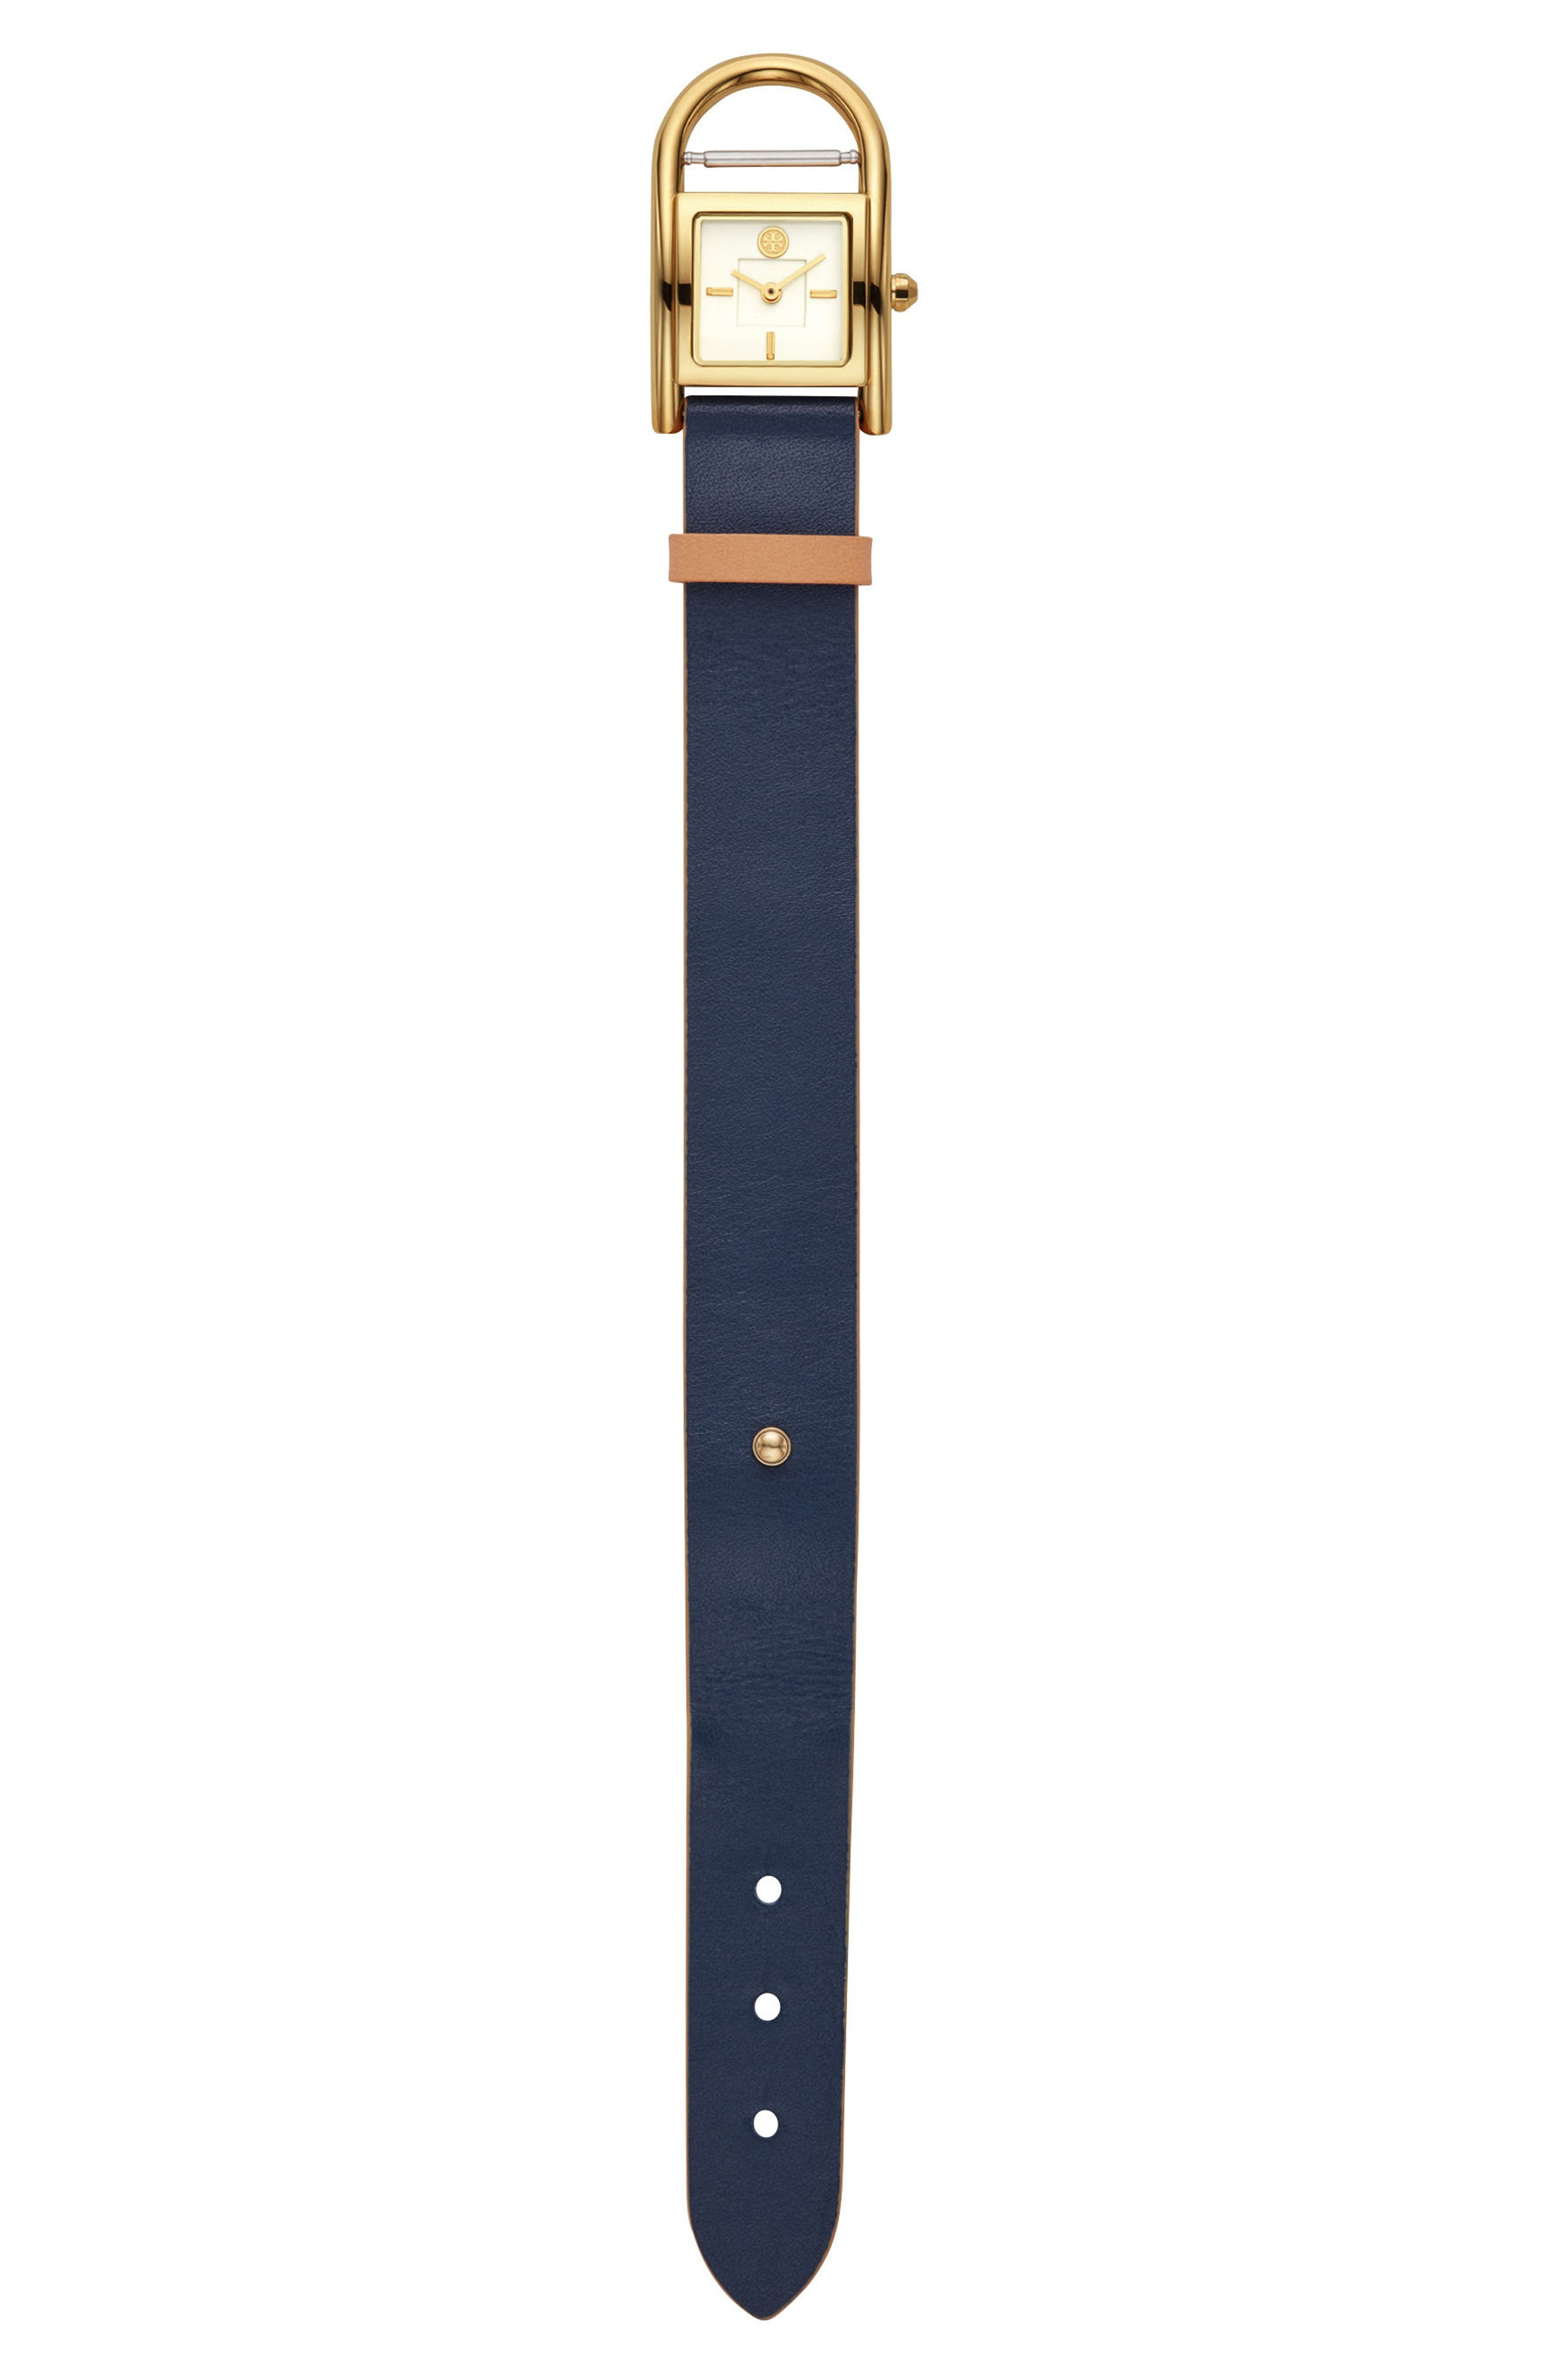 TORY BURCH,                             Thayer Leather Strap Watch, 25mm x 39mm,                             Alternate thumbnail 3, color,                             253